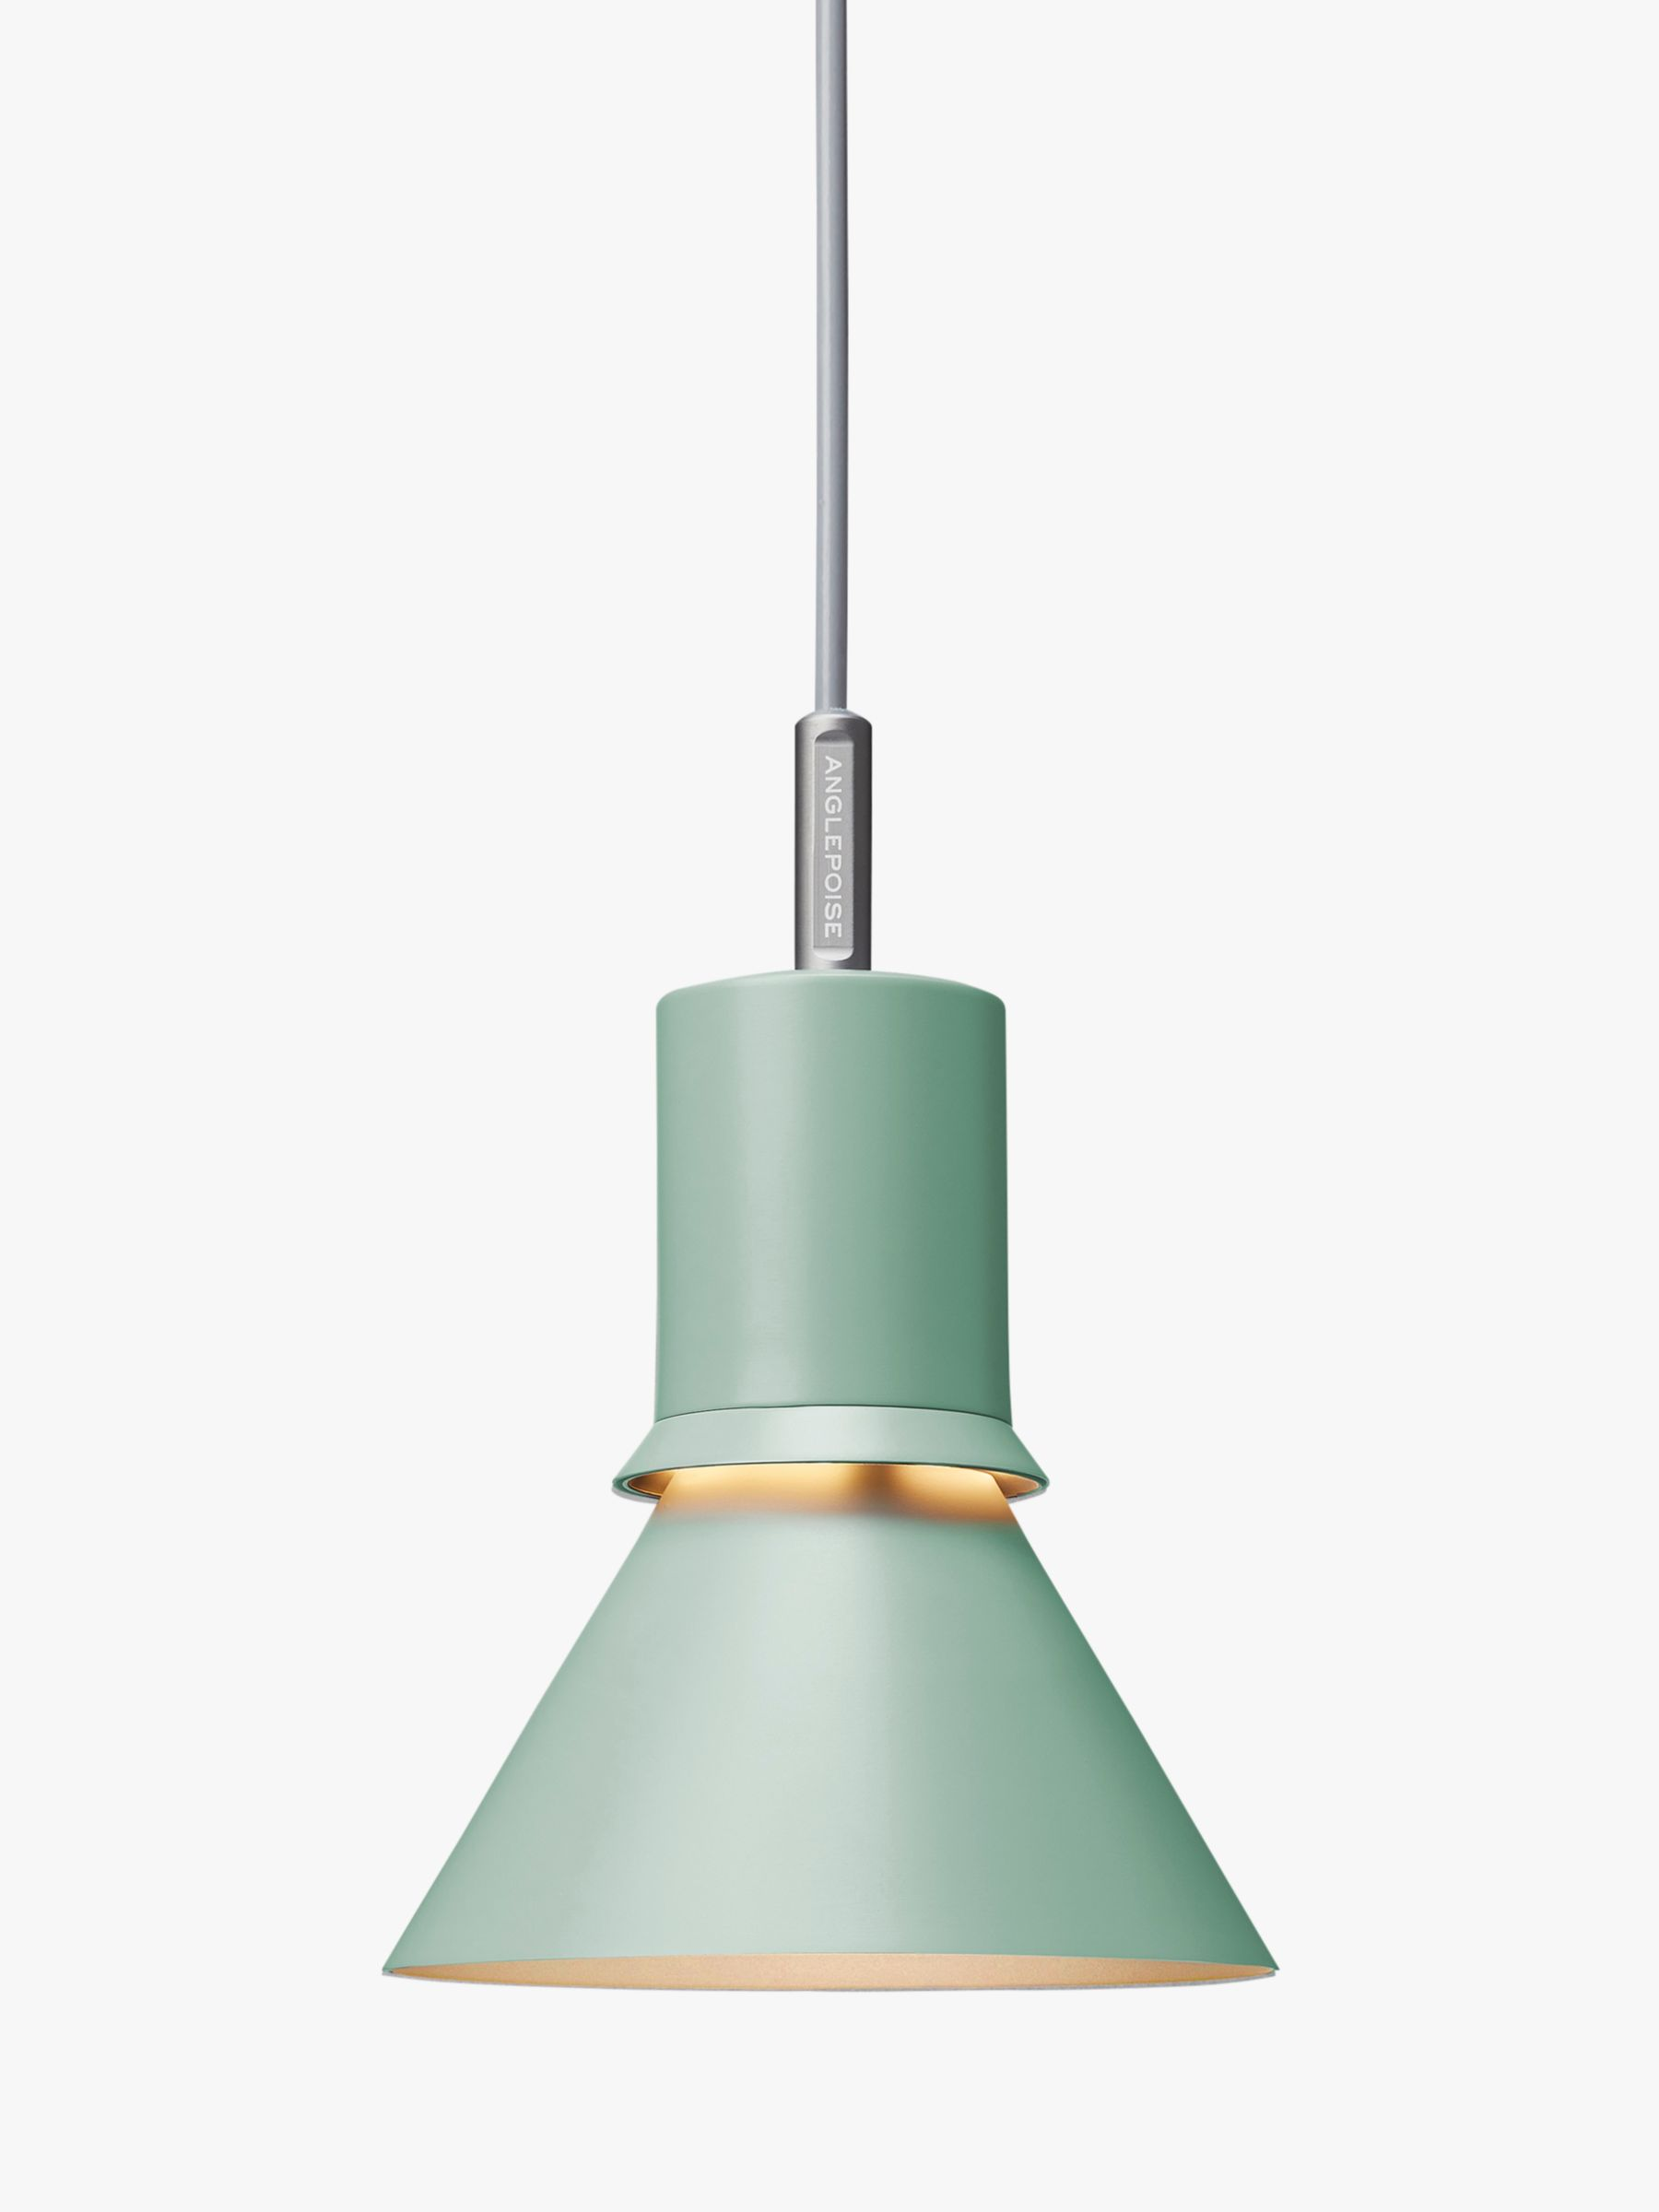 Anglepoise Anglepoise Type 80 Ceiling Light